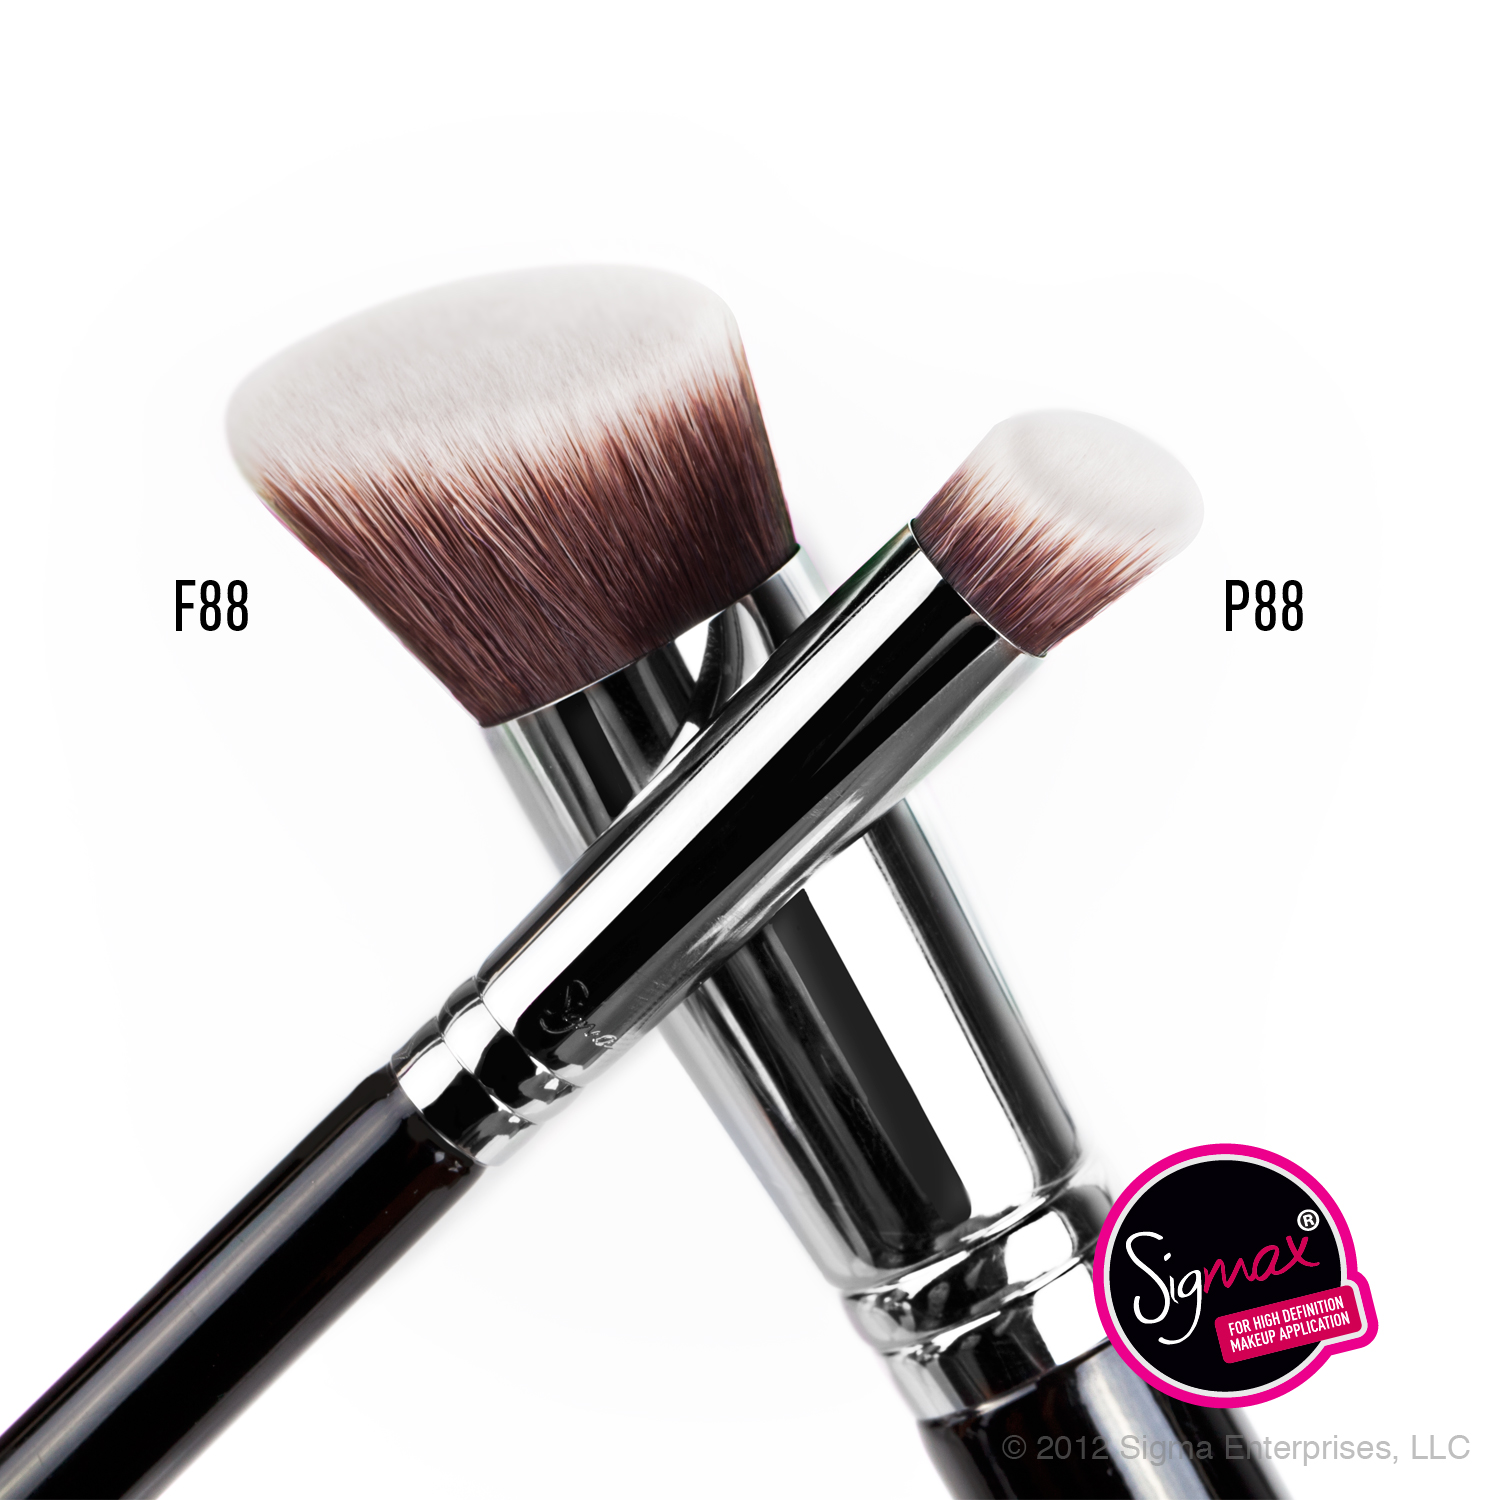 Sigma Beauty F88 and P88 brushes